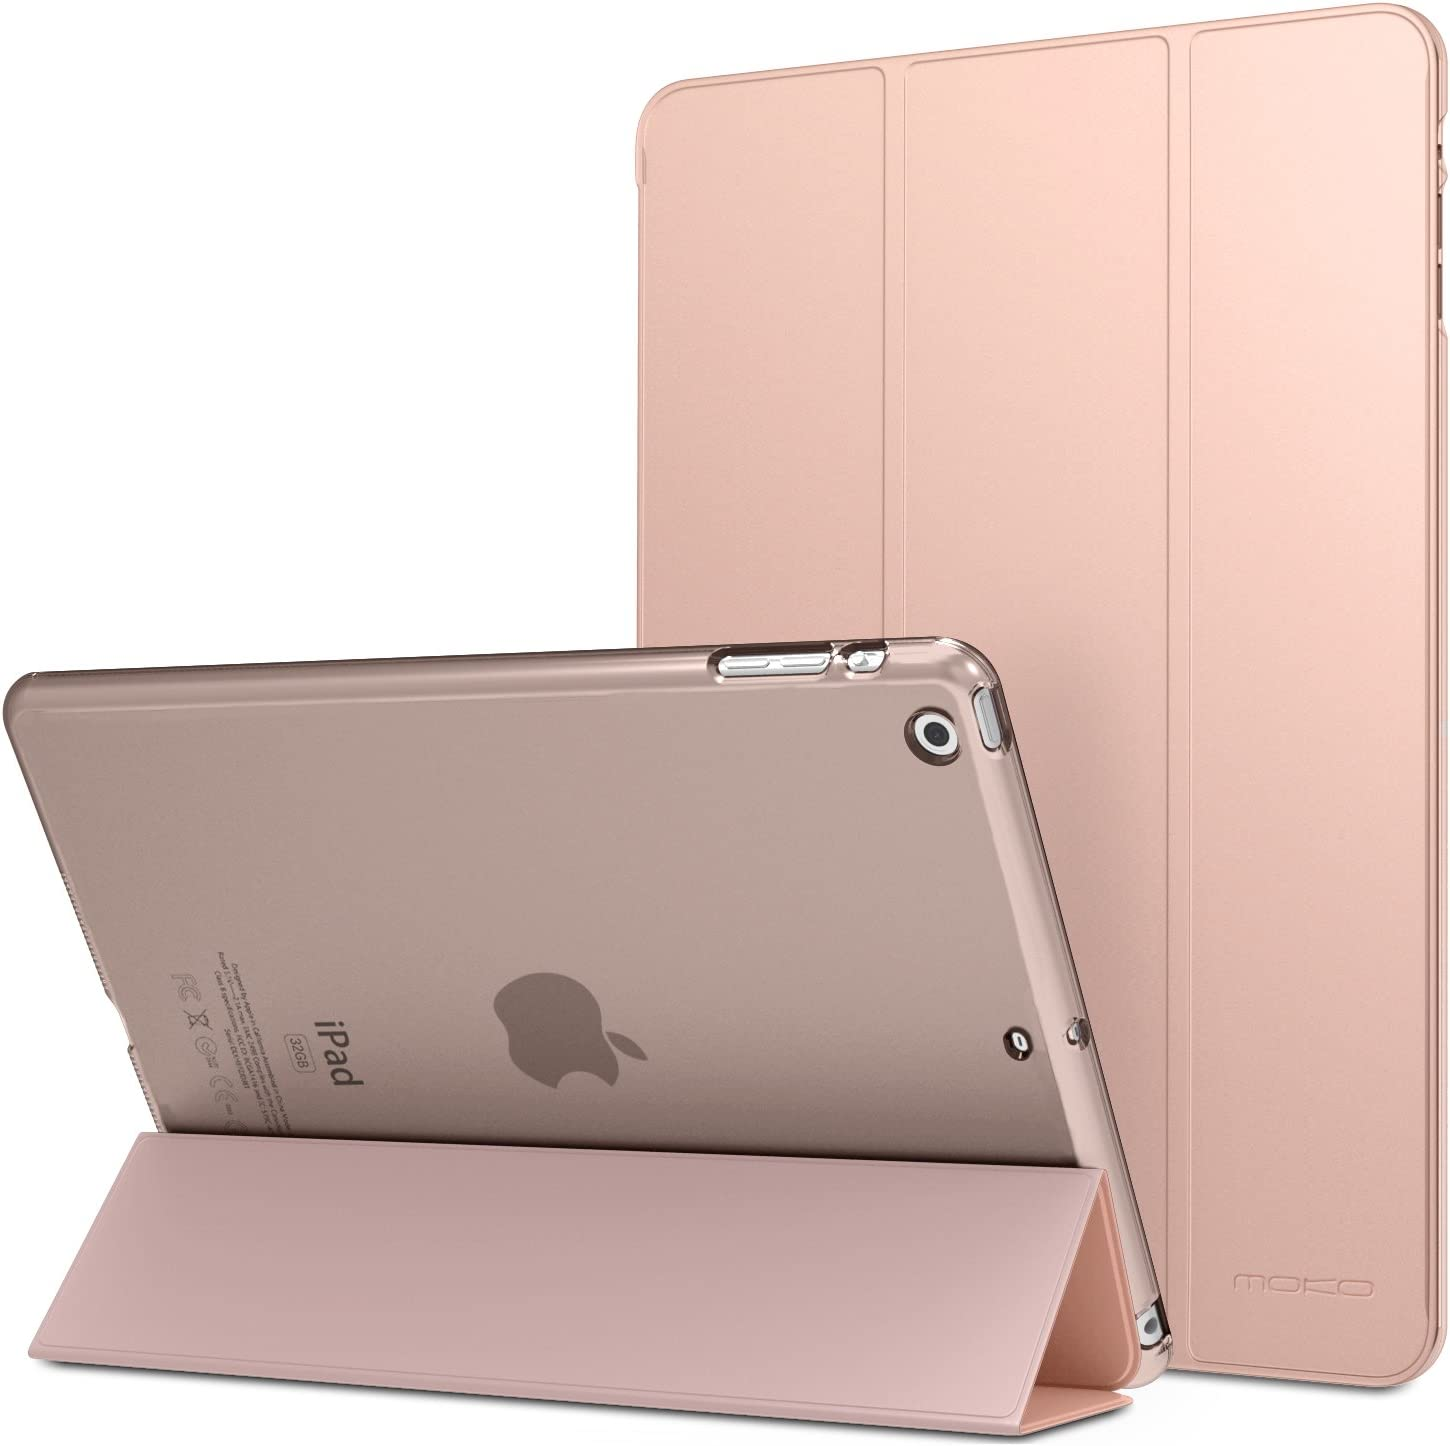 """MoKo Case Fit iPad Air - Slim Lightweight Smart Shell Stand Cover with Translucent Frosted Back Protector Fit iPad Air 9.7"""" Tablet, Rose Gold (with Auto Wake/Sleep, Not fit iPad Air 2)"""